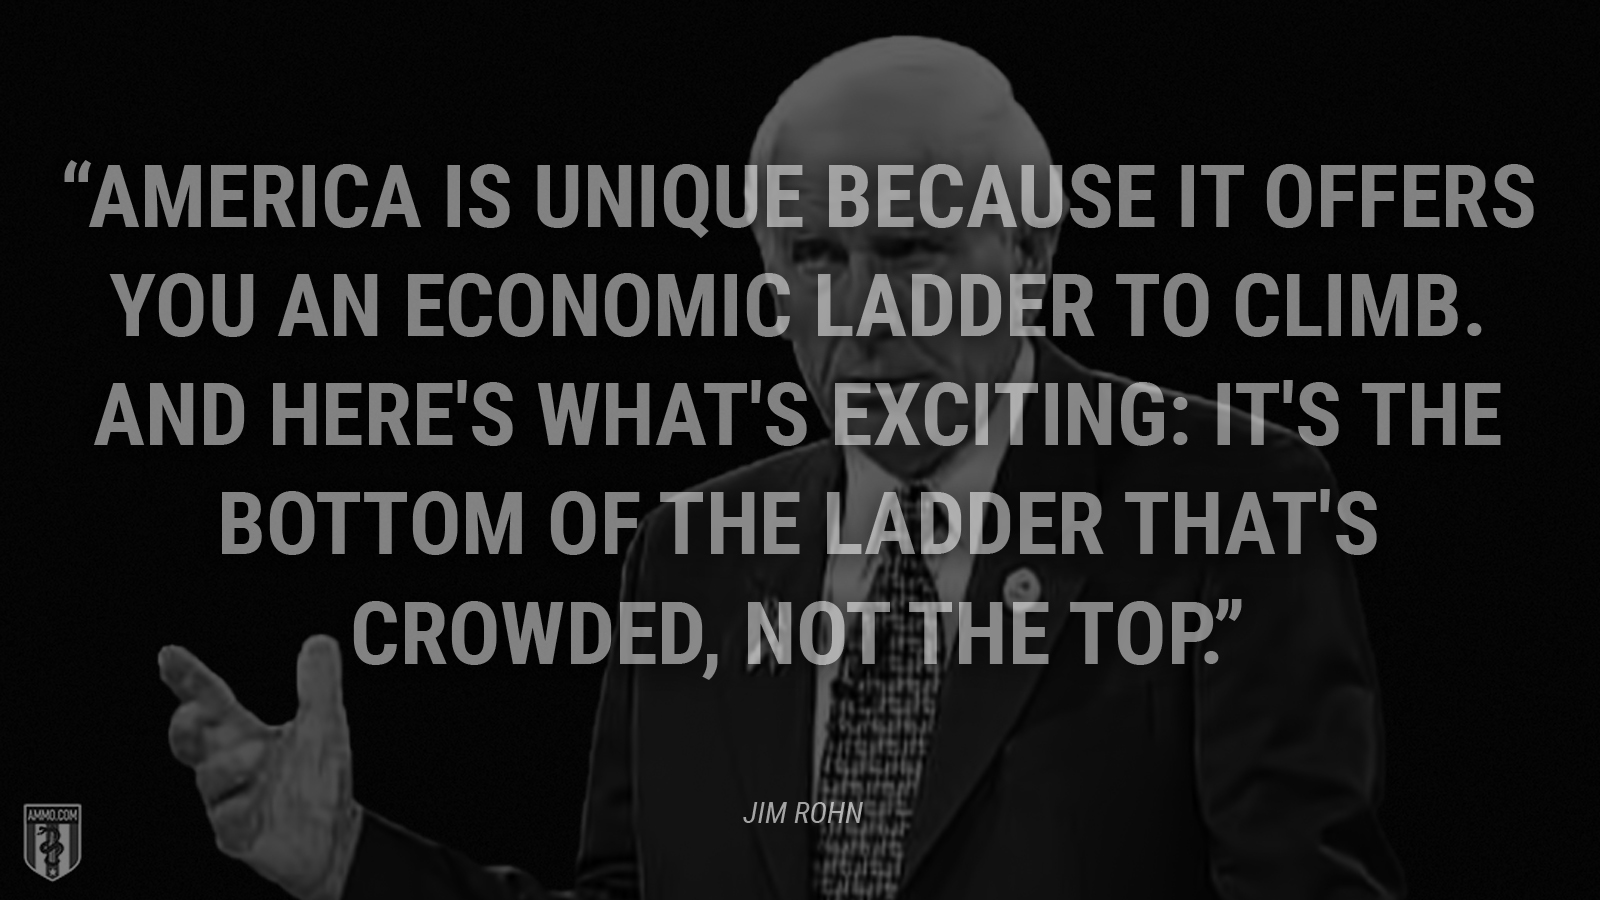 """America is unique because it offers you an economic ladder to climb. And here's what's exciting: It's the bottom of the ladder that's crowded, not the top."" - Jim Rohn"